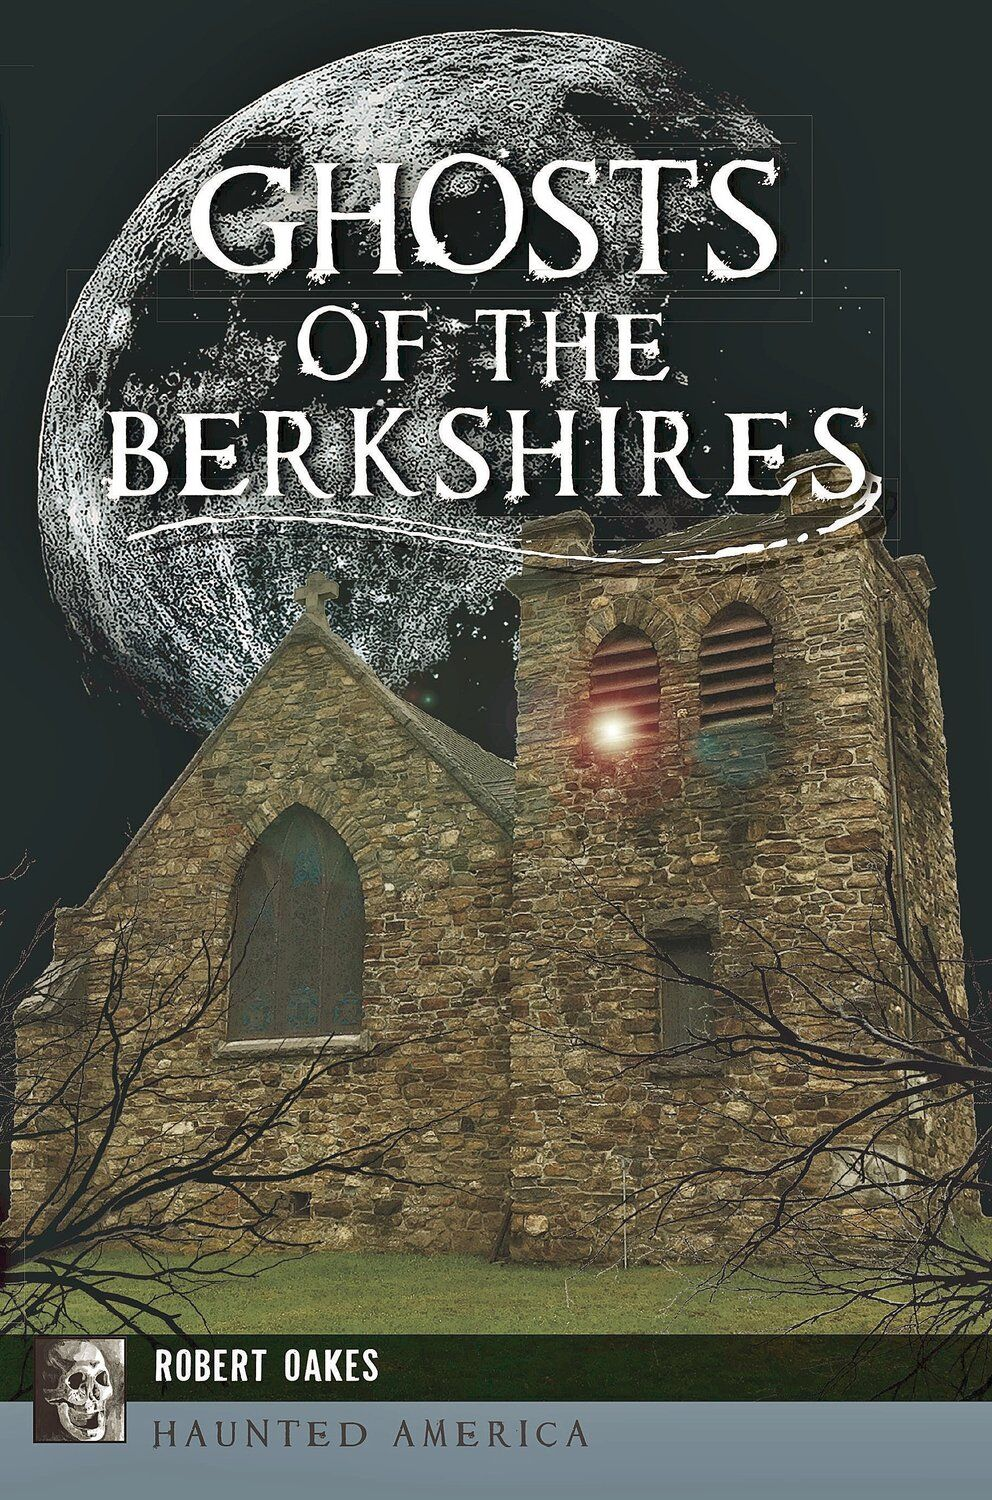 Open Book with Robert Oakes, author of 'Ghosts of the Berkshires'